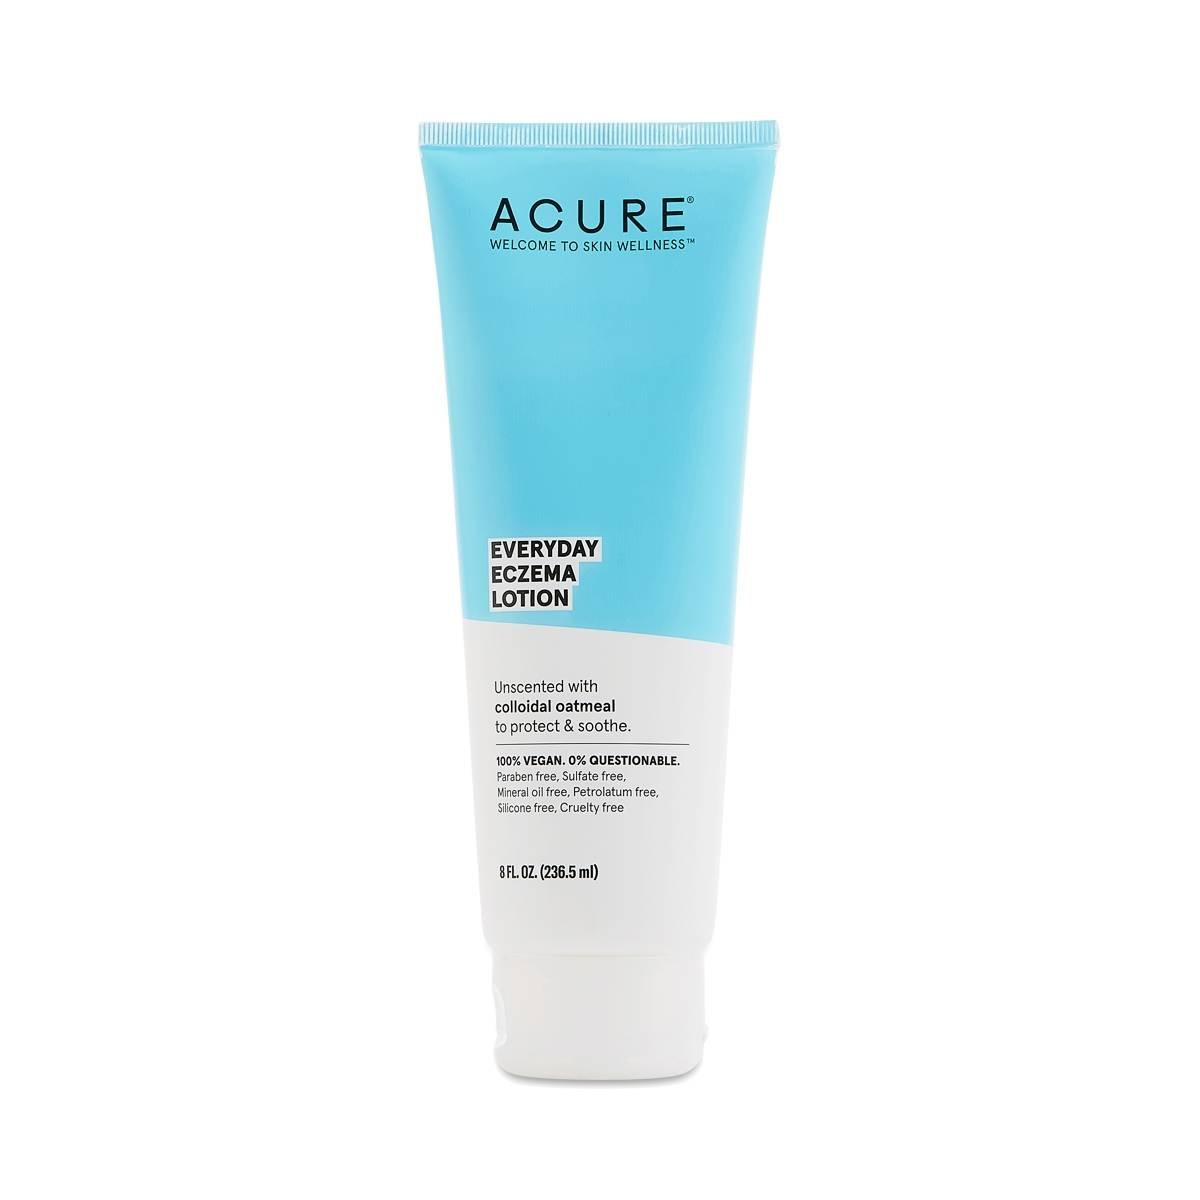 ACURE Everyday Eczema Lotion, Unscented